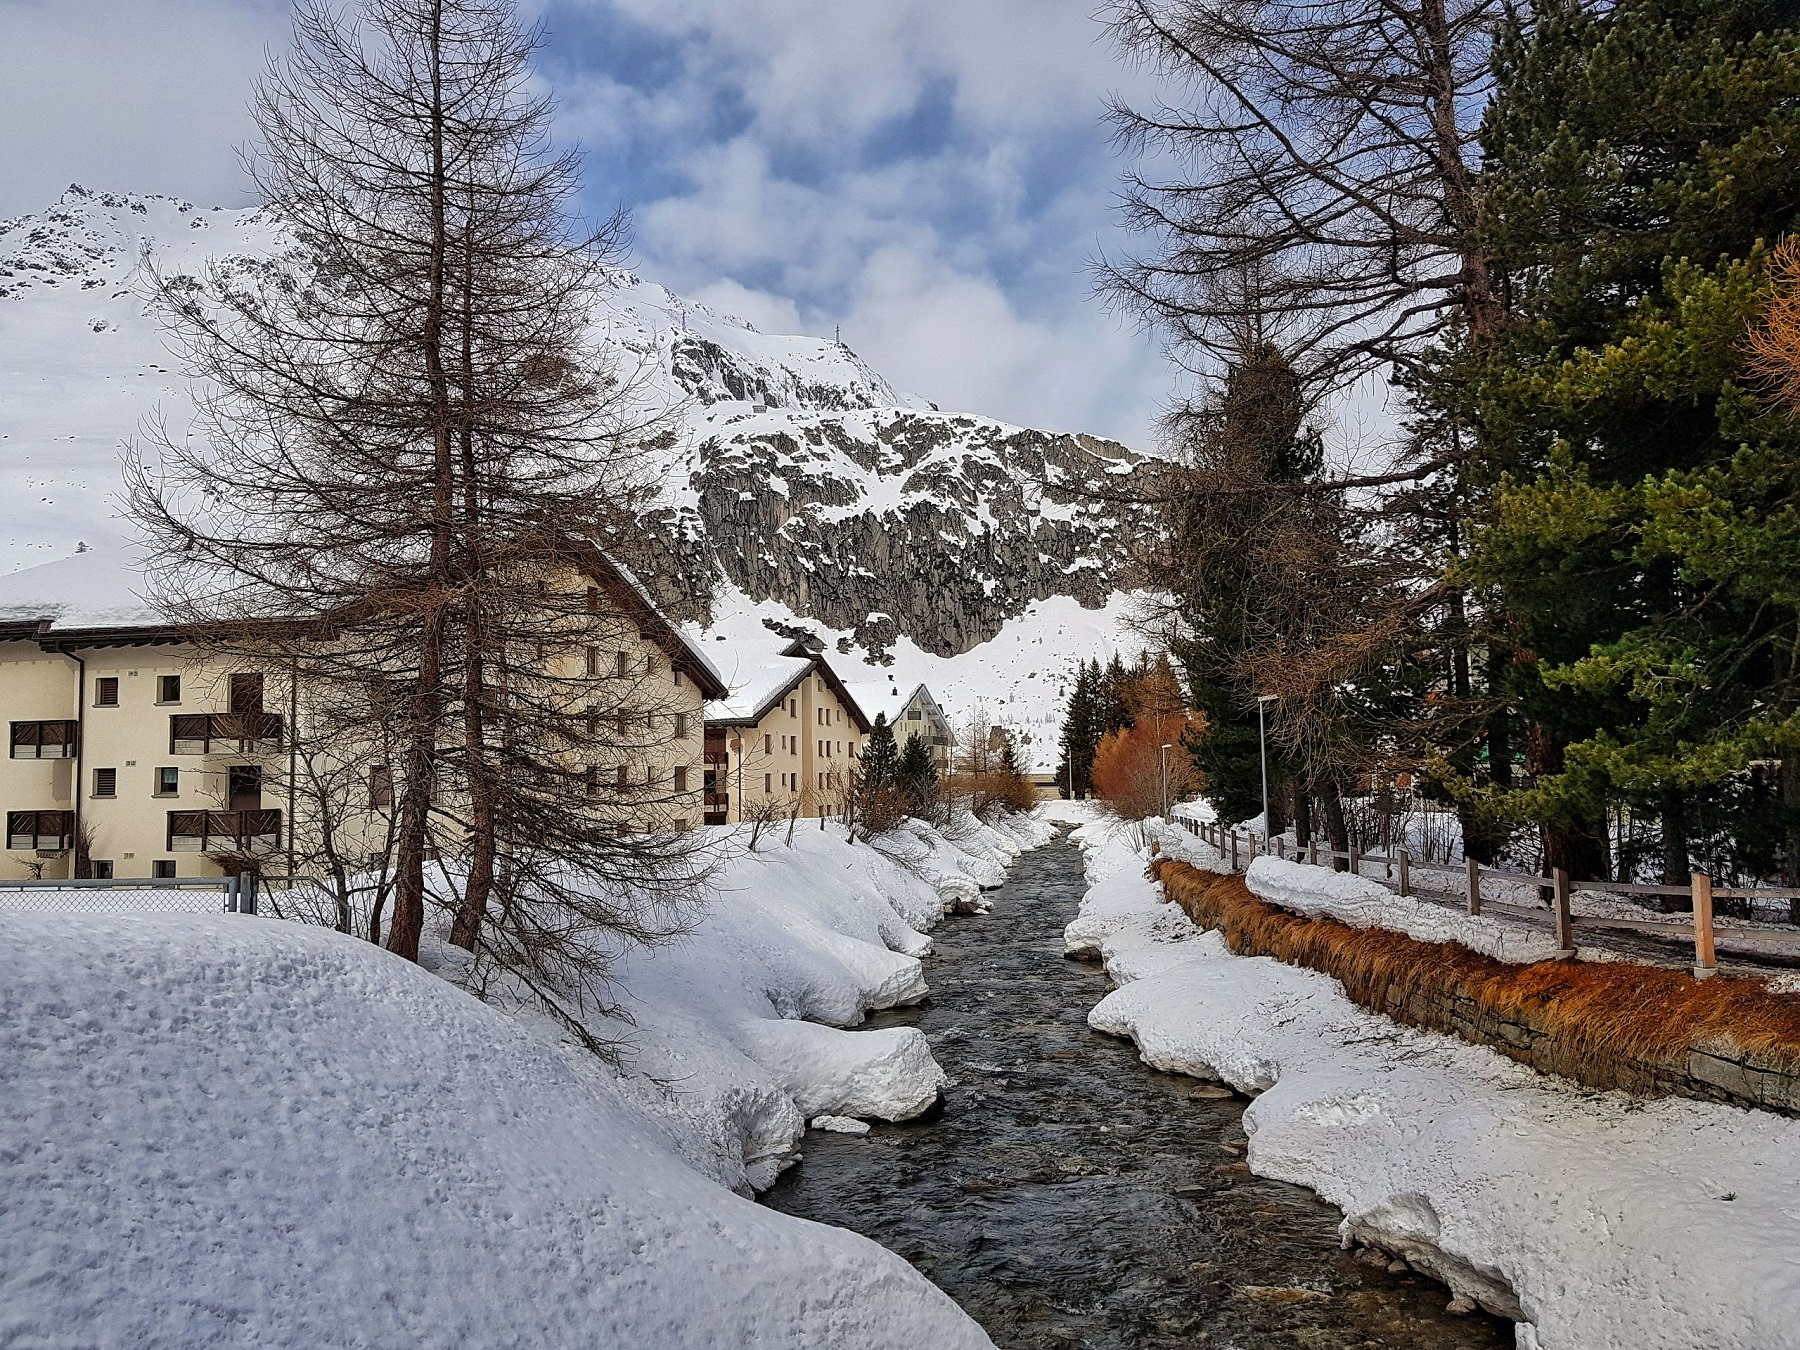 Skiing for beginners: How a long weekend in Andermatt made me fall in love with skiing